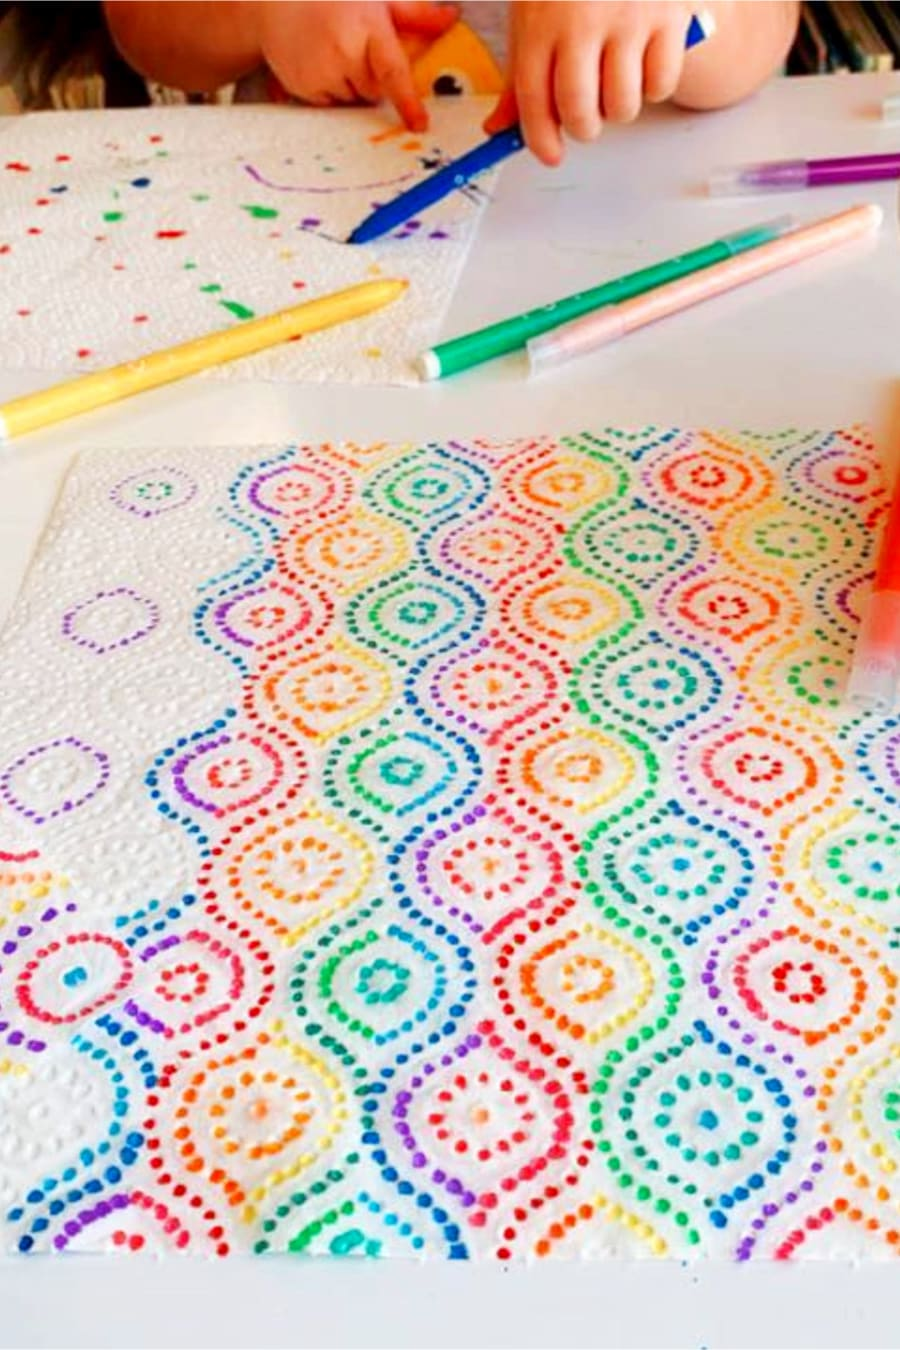 crafts to do when bored at home - fun coloring crafts to do with friends or bored alone